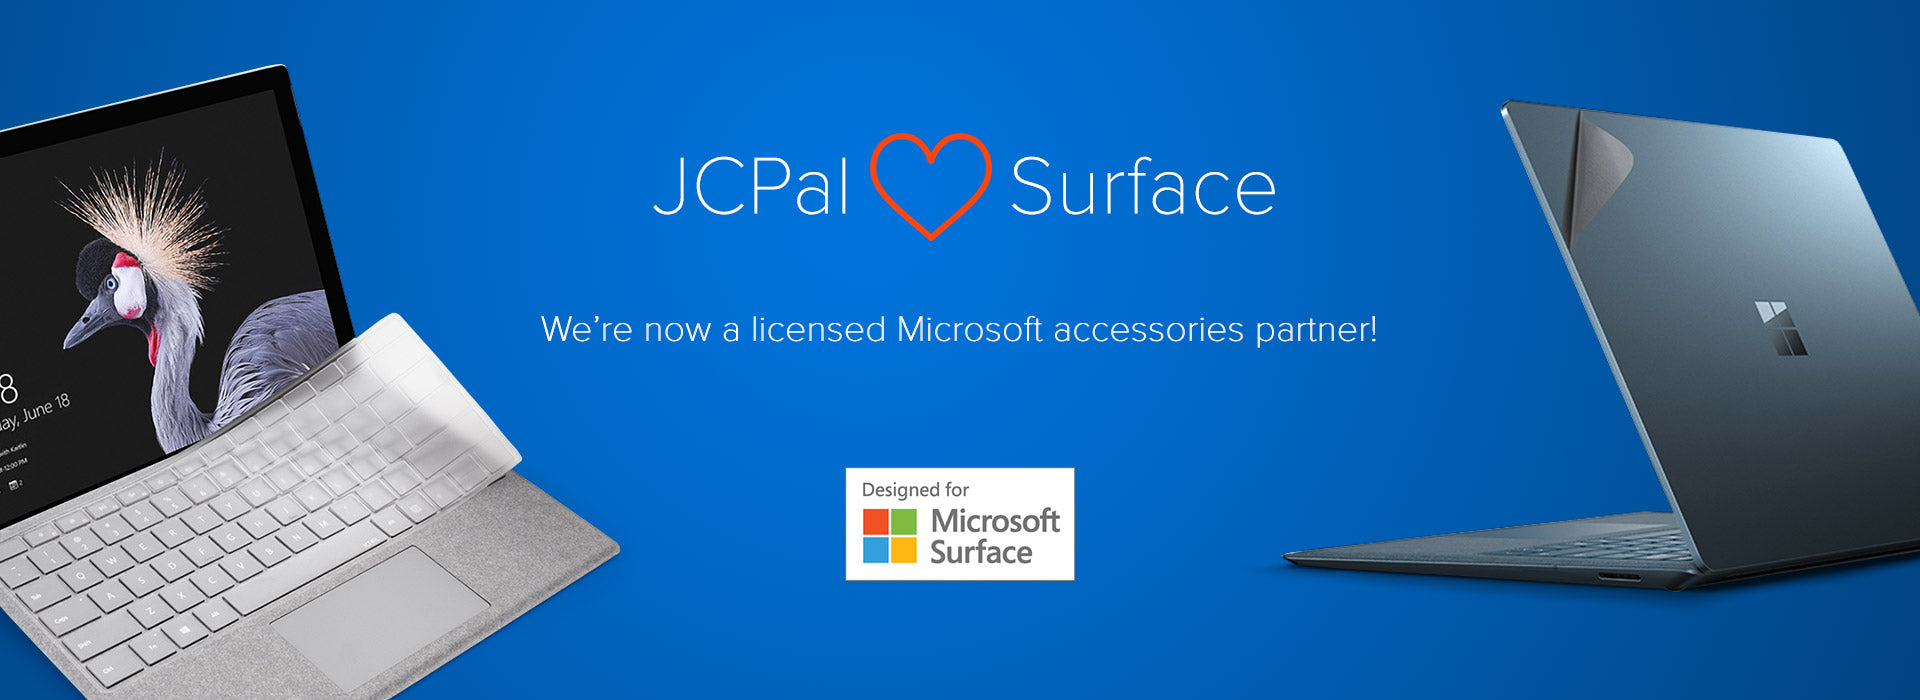 Licensed Microsoft Designed for Surface accessories partner